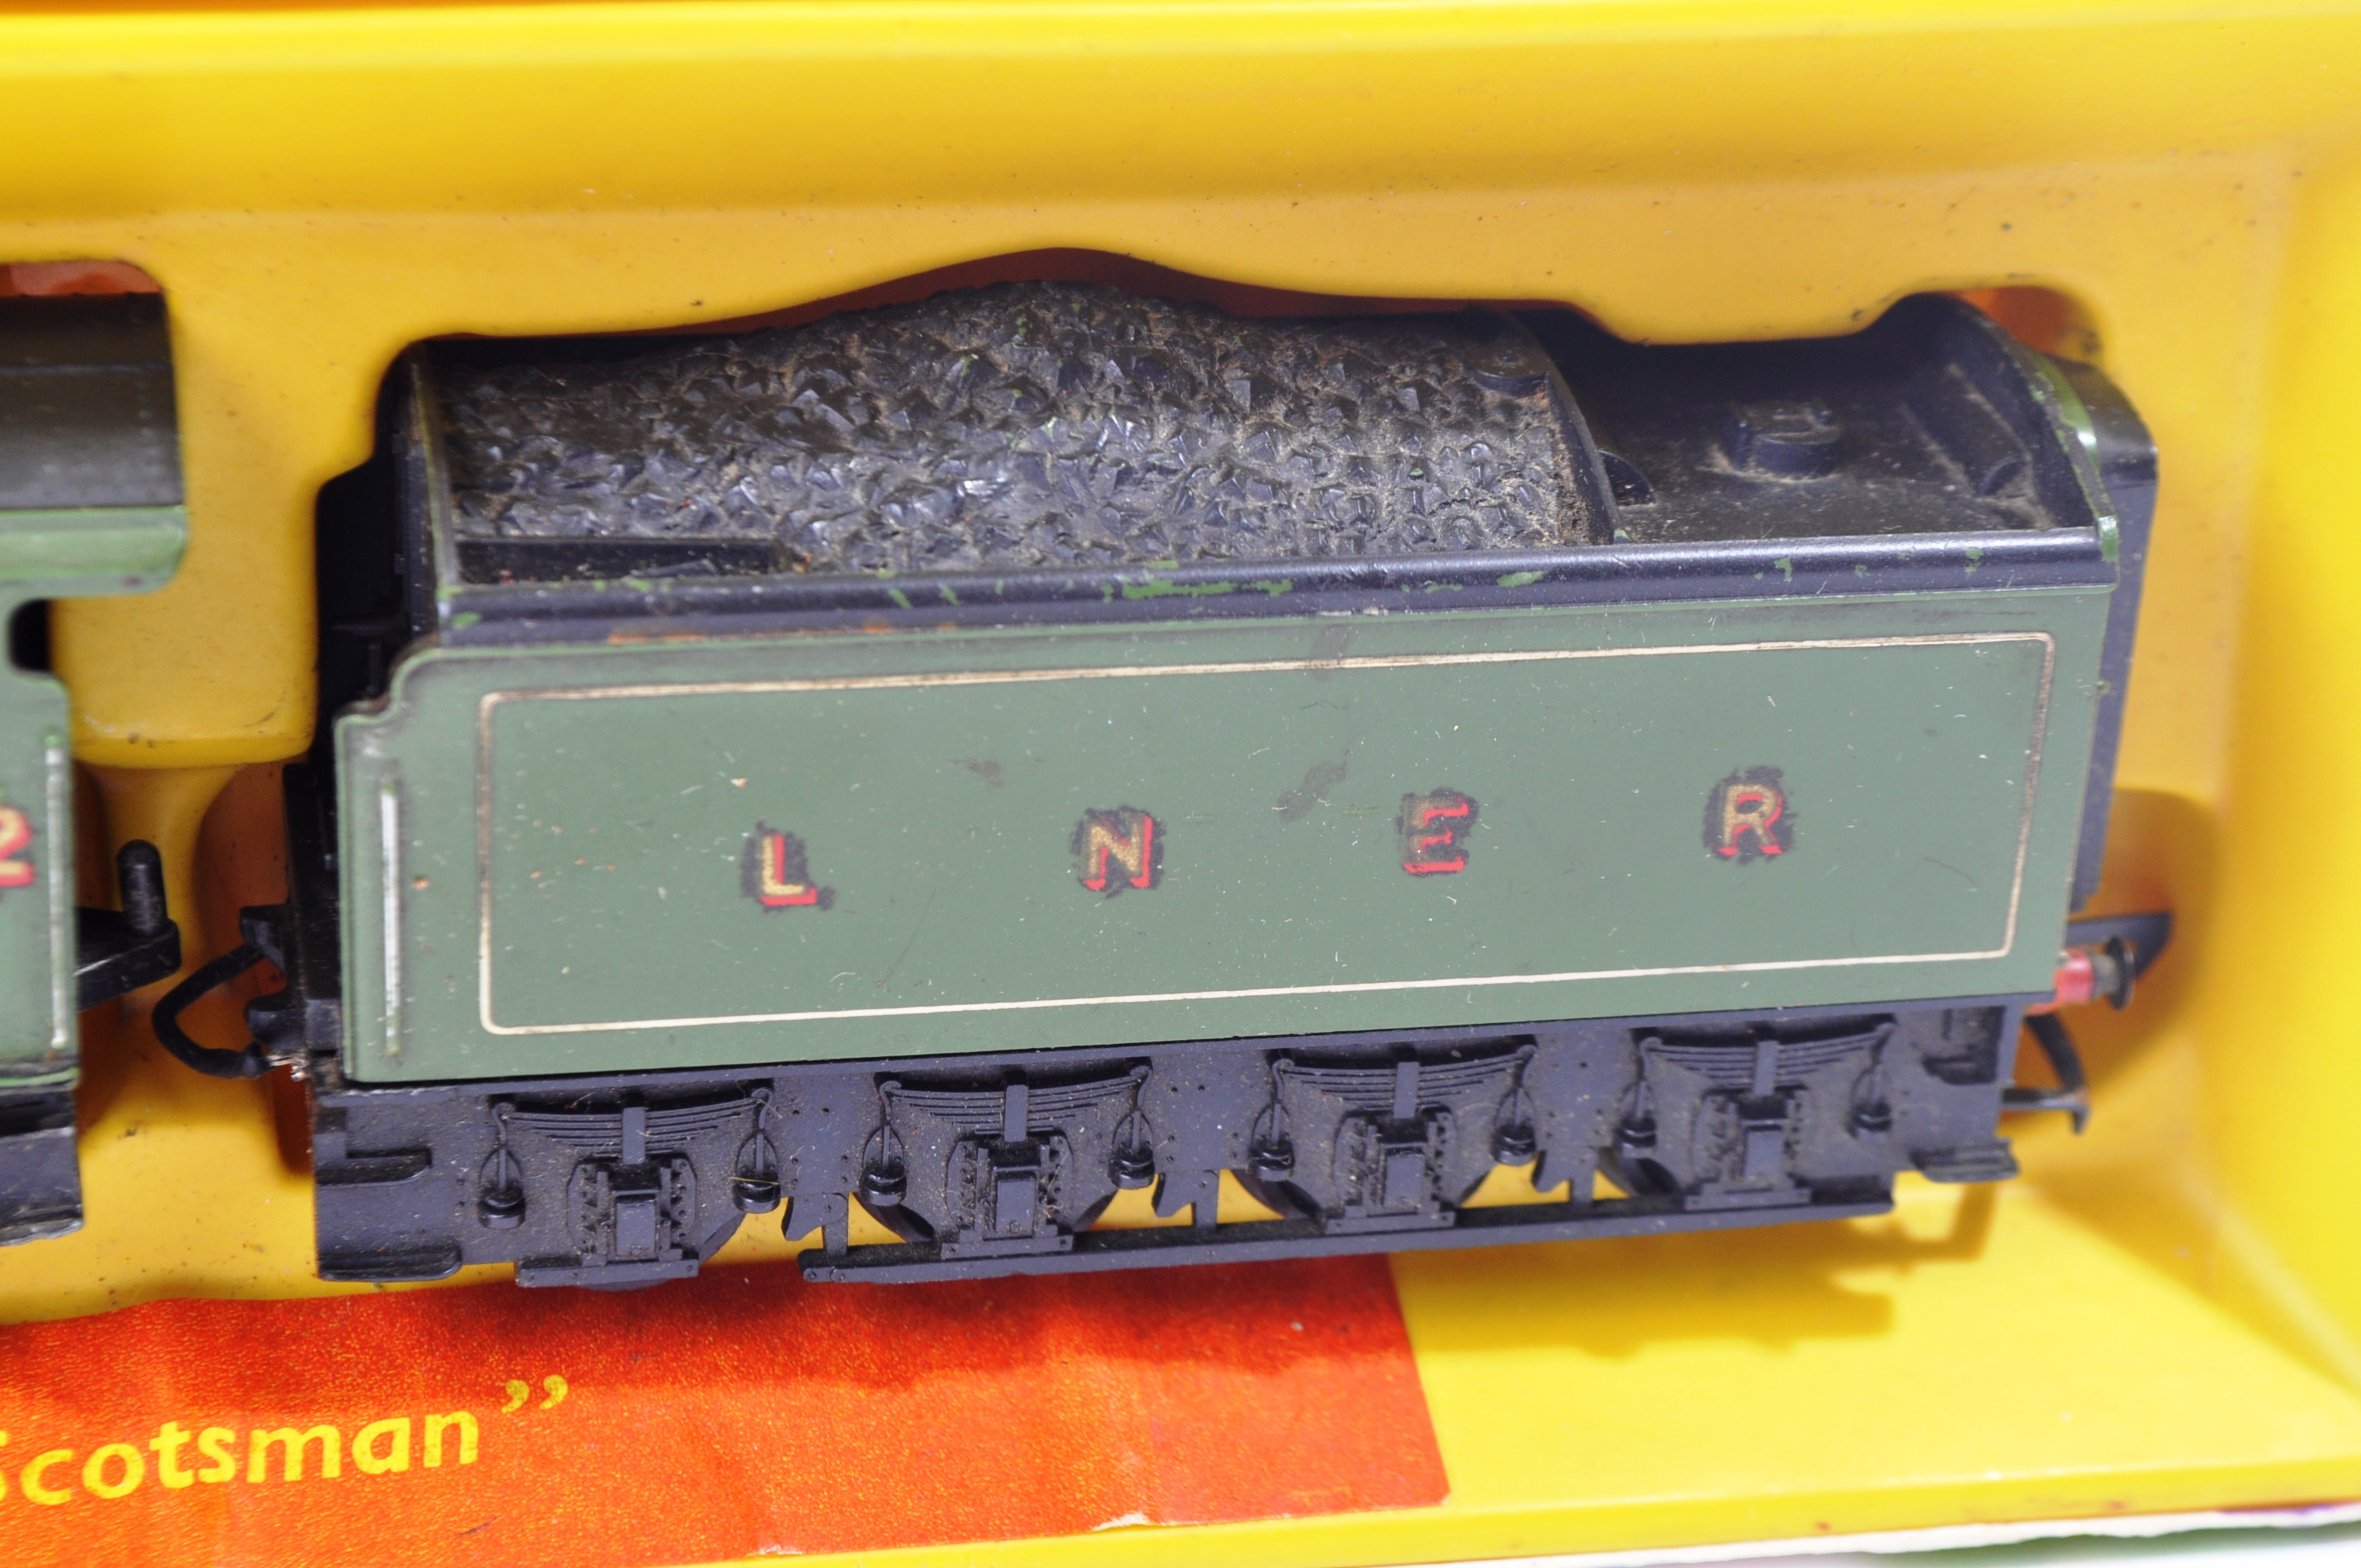 TWO VINTAGE HORNBY & TRIANG MODEL RAILWAY TRAINSET LOCOMOTIVES - Image 3 of 6